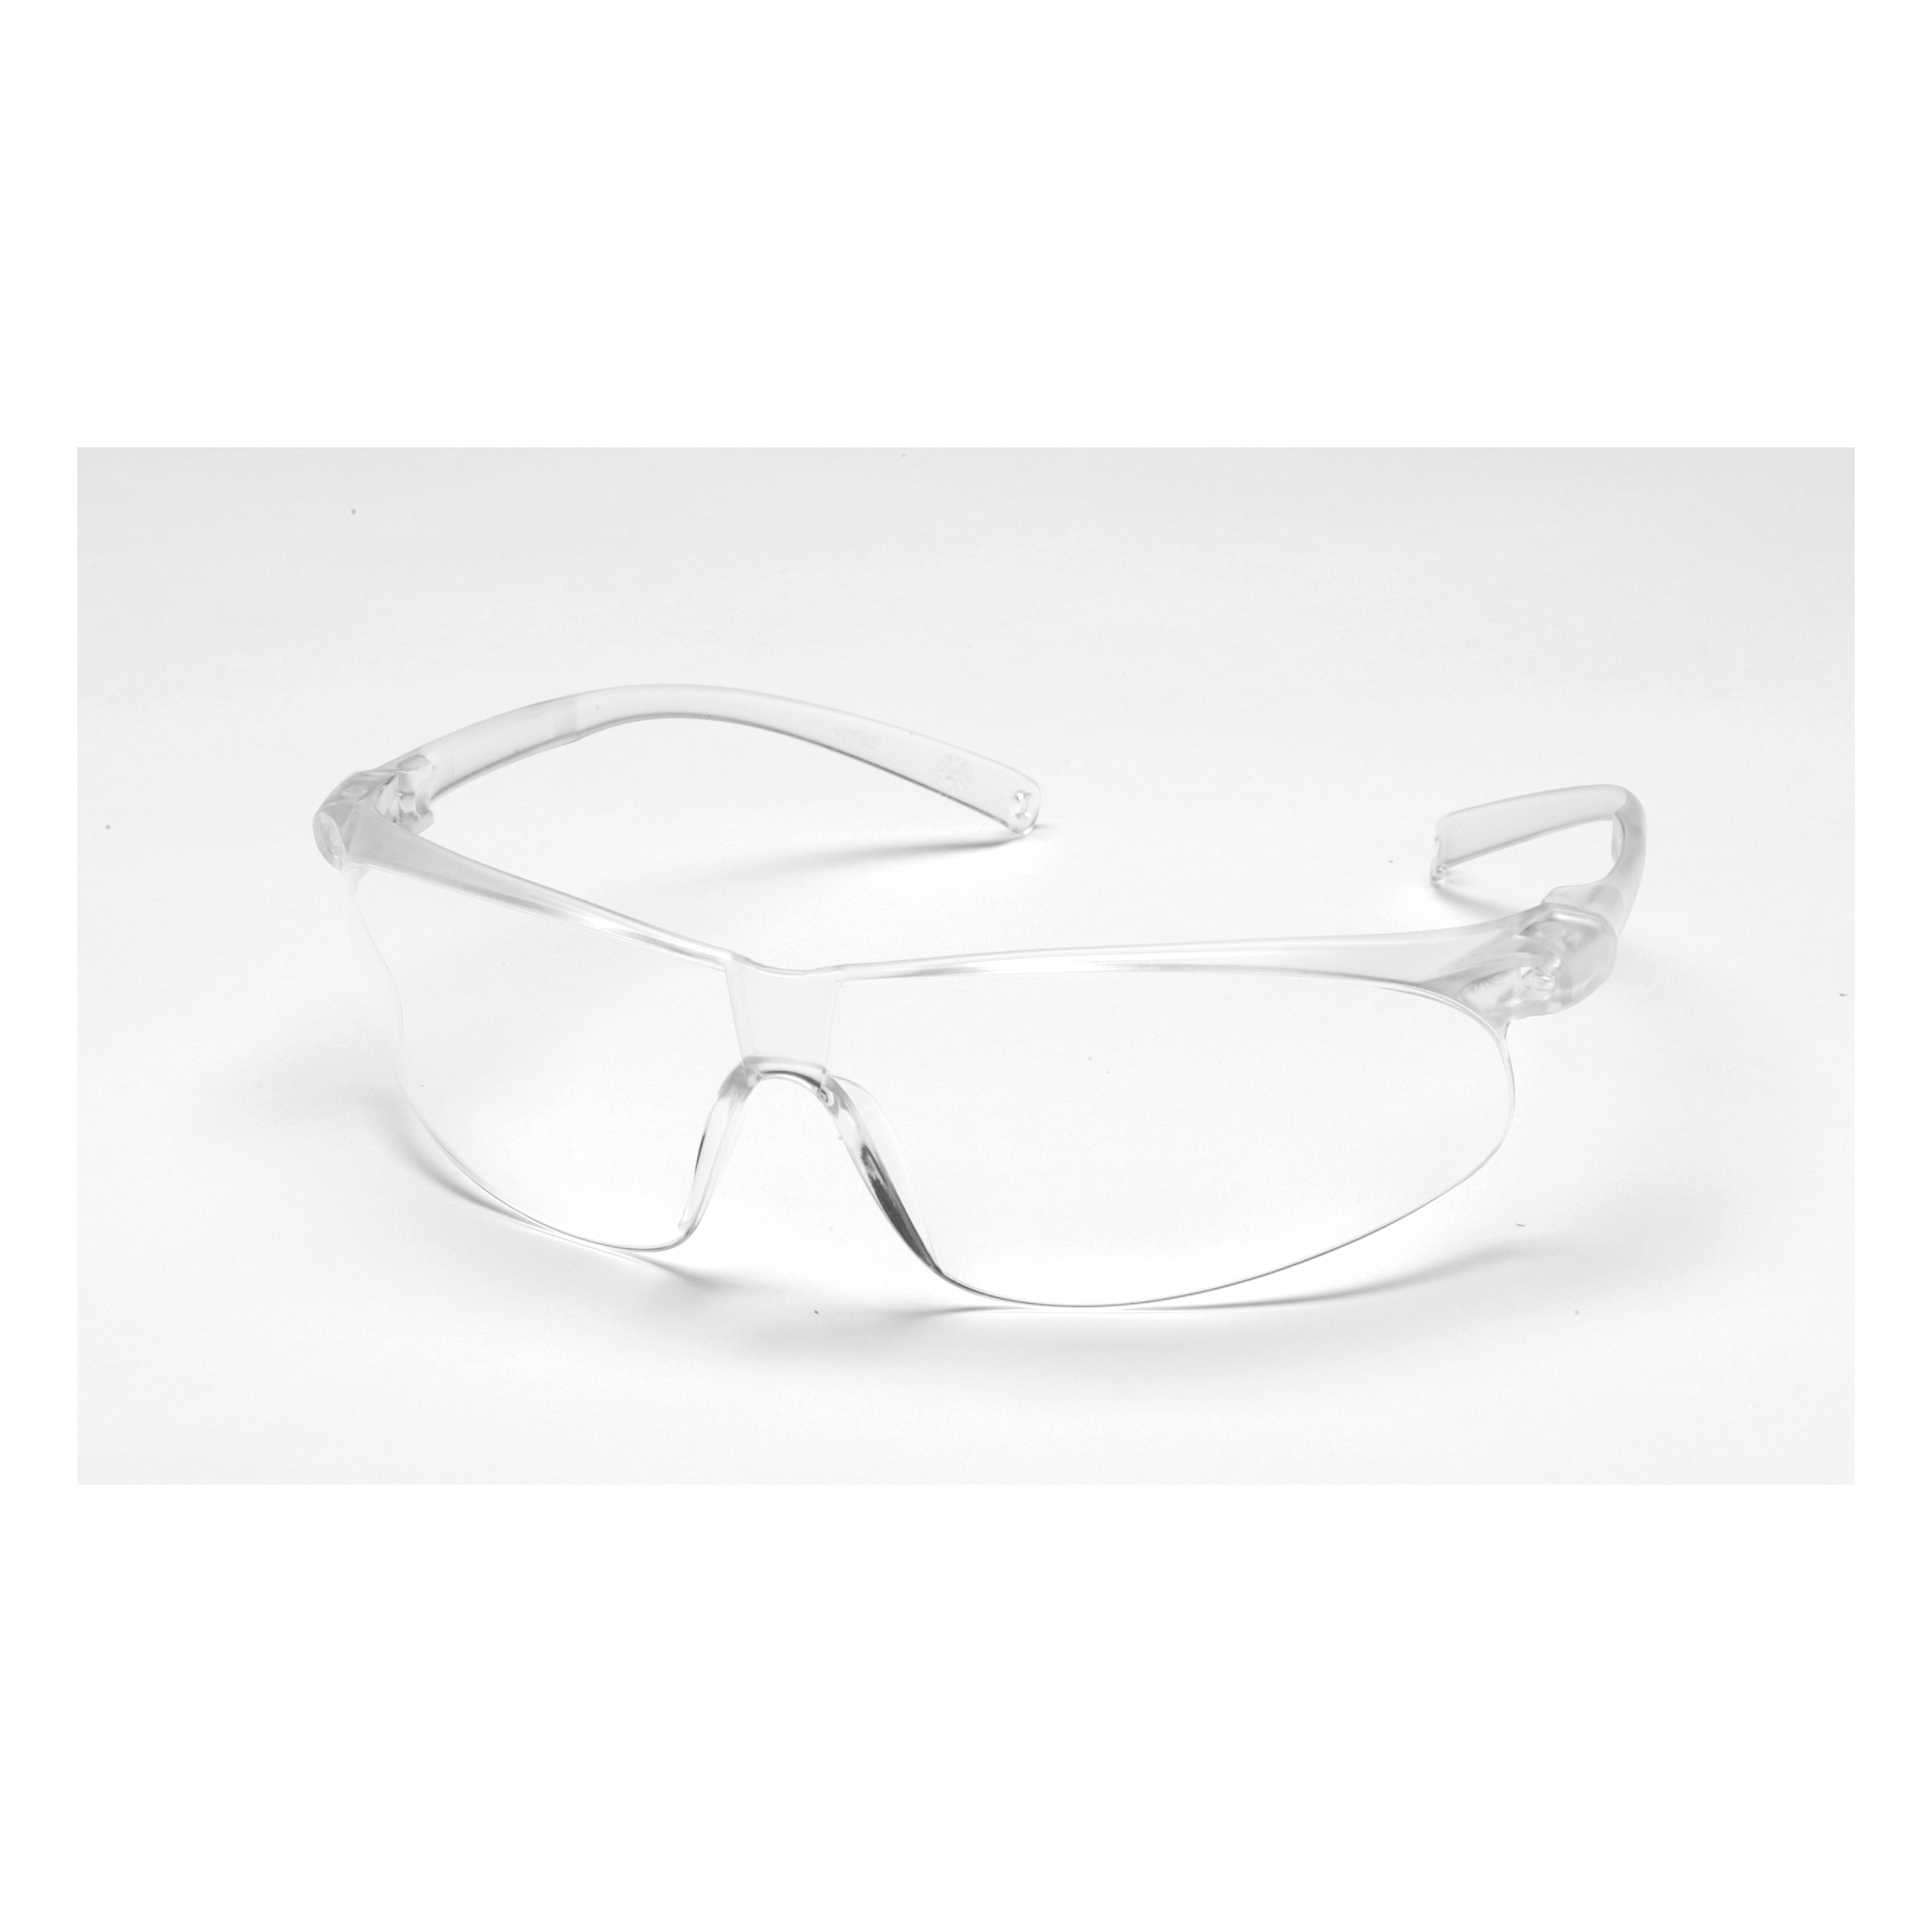 3M™ Virtua™ 078371-62055 11385-00000-20 Economy Lightweight Safety Glasses, Anti-Scratch Clear Lens, Frameless Clear Plastic Frame, Polycarbonate Lens, Specifications Met: ANSI Z87.1-2015, CSA Z94.3